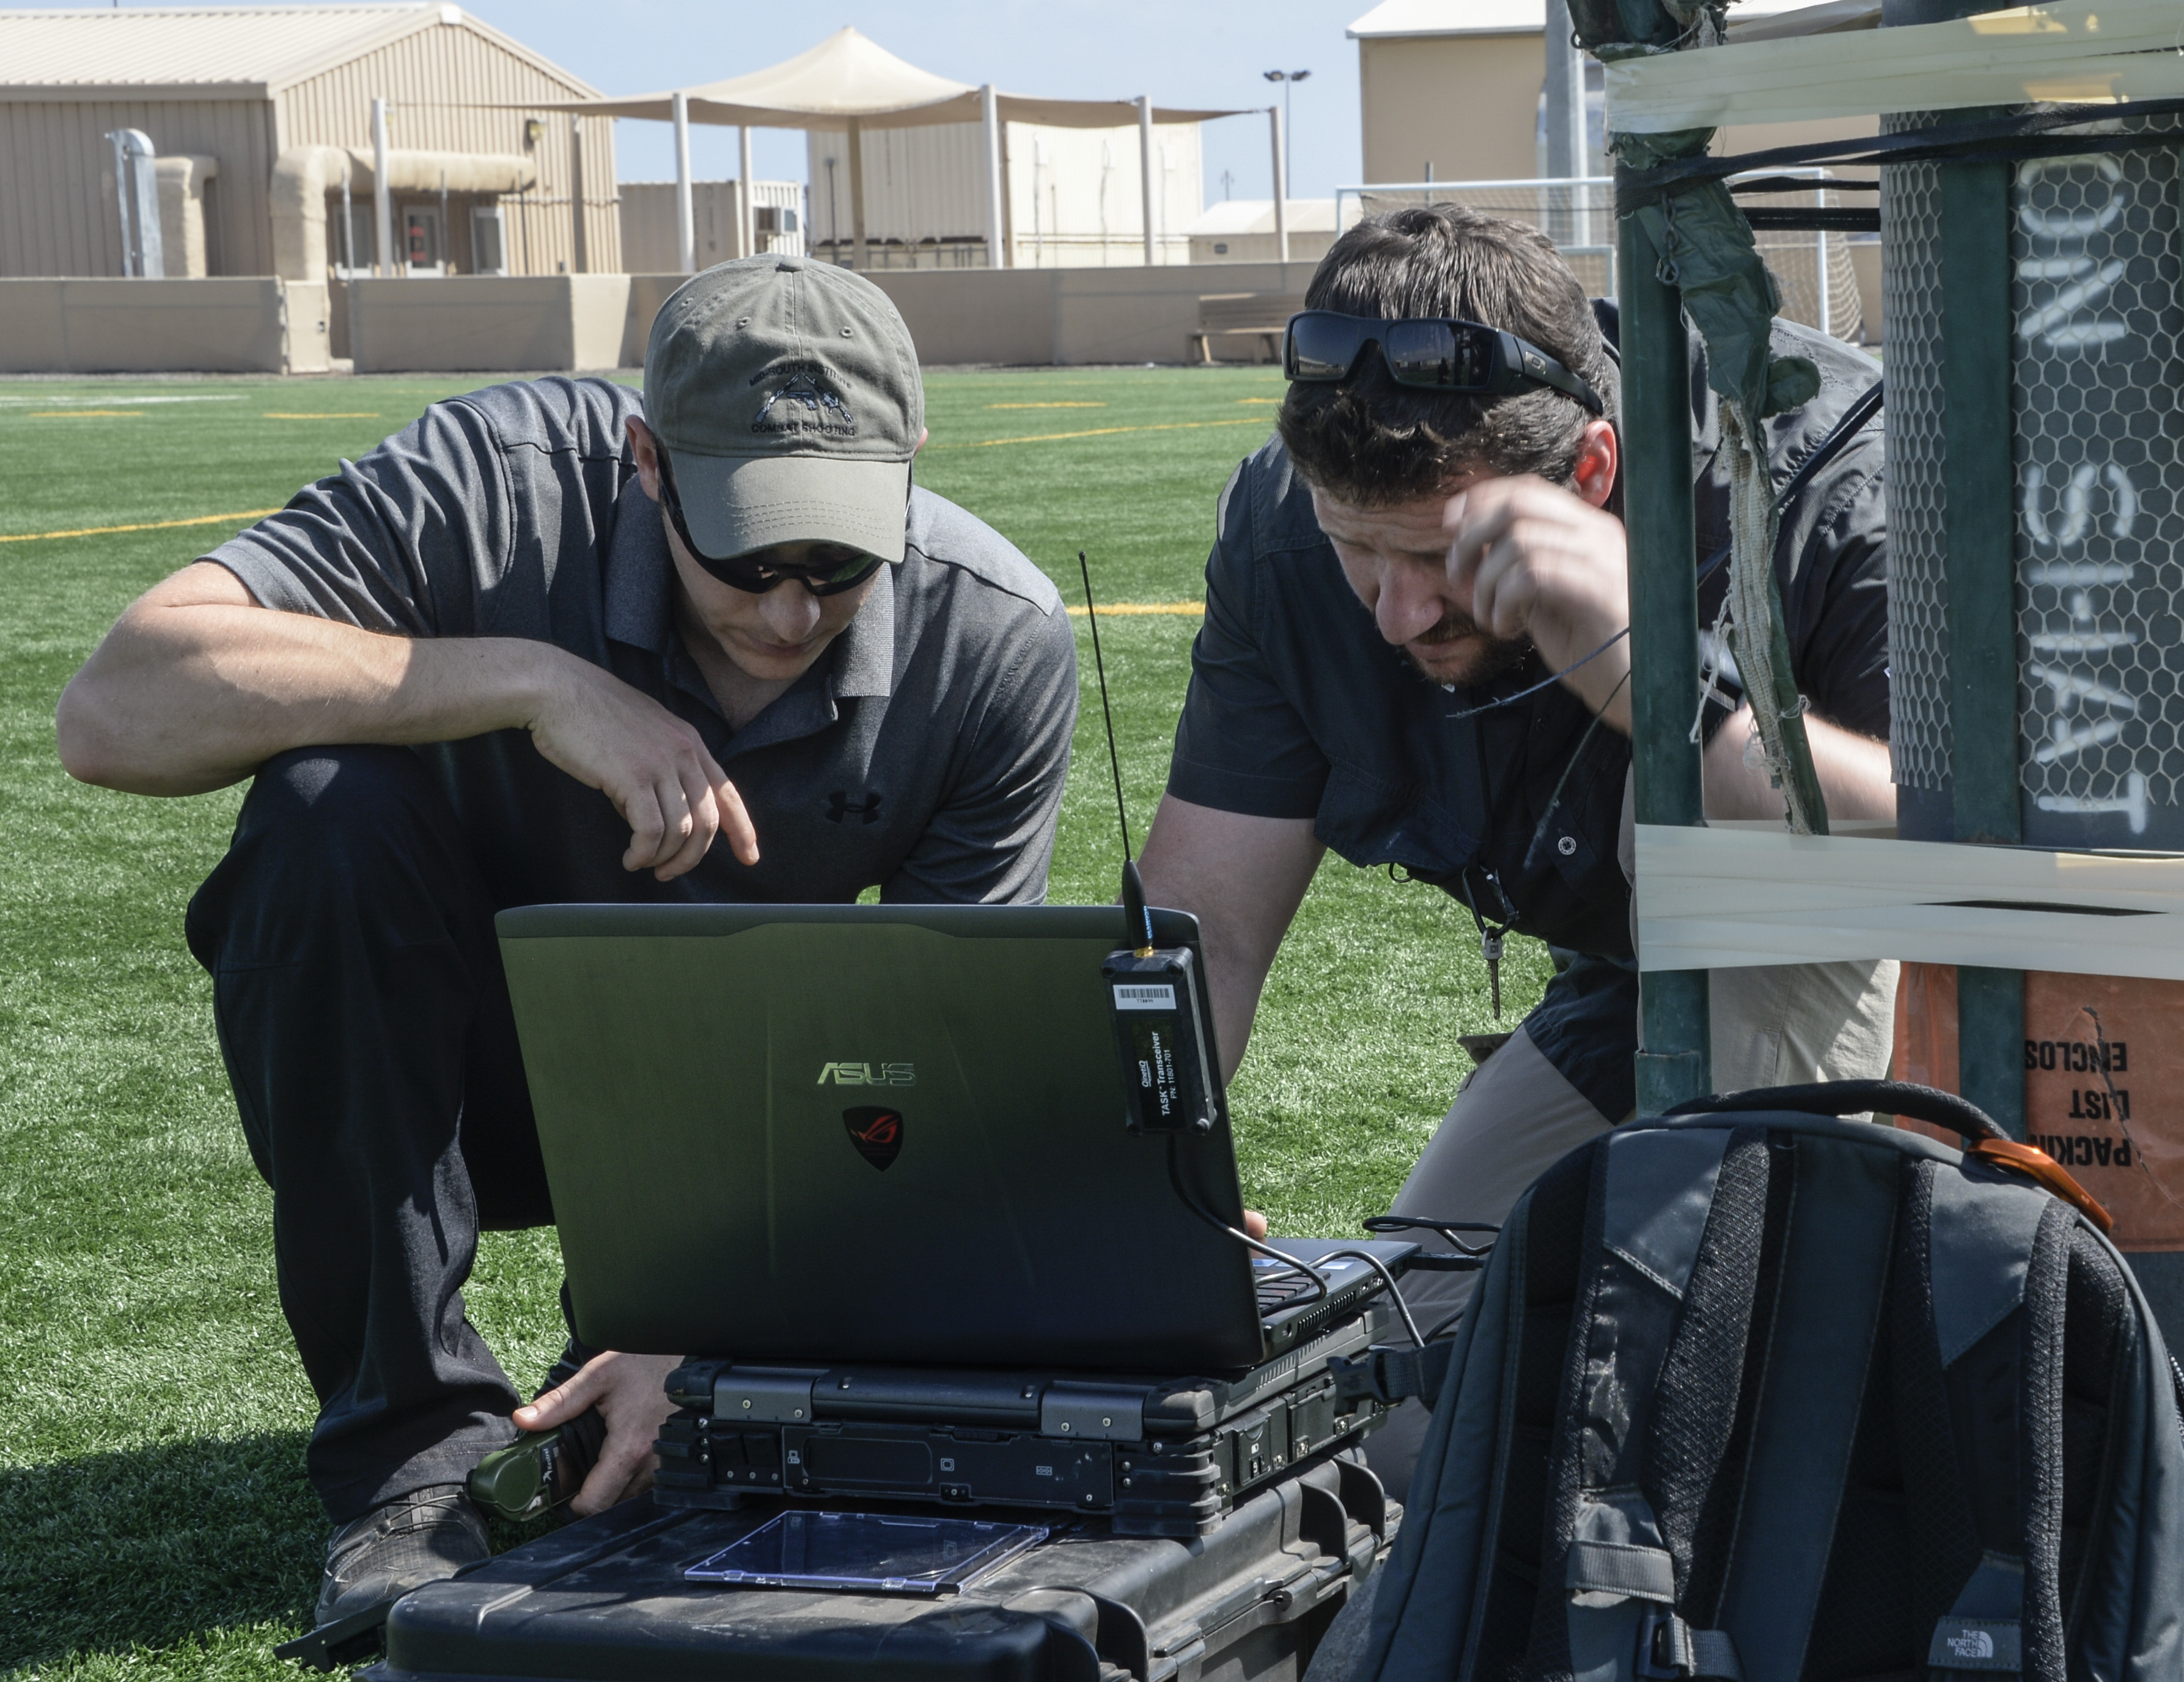 CAMP LEMONNIER, DJIBOUTI- U.S. Air Force Special Operations Weather Technicians, Special Operations Command Africa (SOCAF,) participate in the Upper Air Sounding Project by set up a computer for preparation to download information from a weather balloon at Camp Lemonnier, Dec. 8, 2016. The Upper Air Sounding Project is a joint venture between the Horn of Africa and the special operation forces on behalf of Special Operations Command Africa.